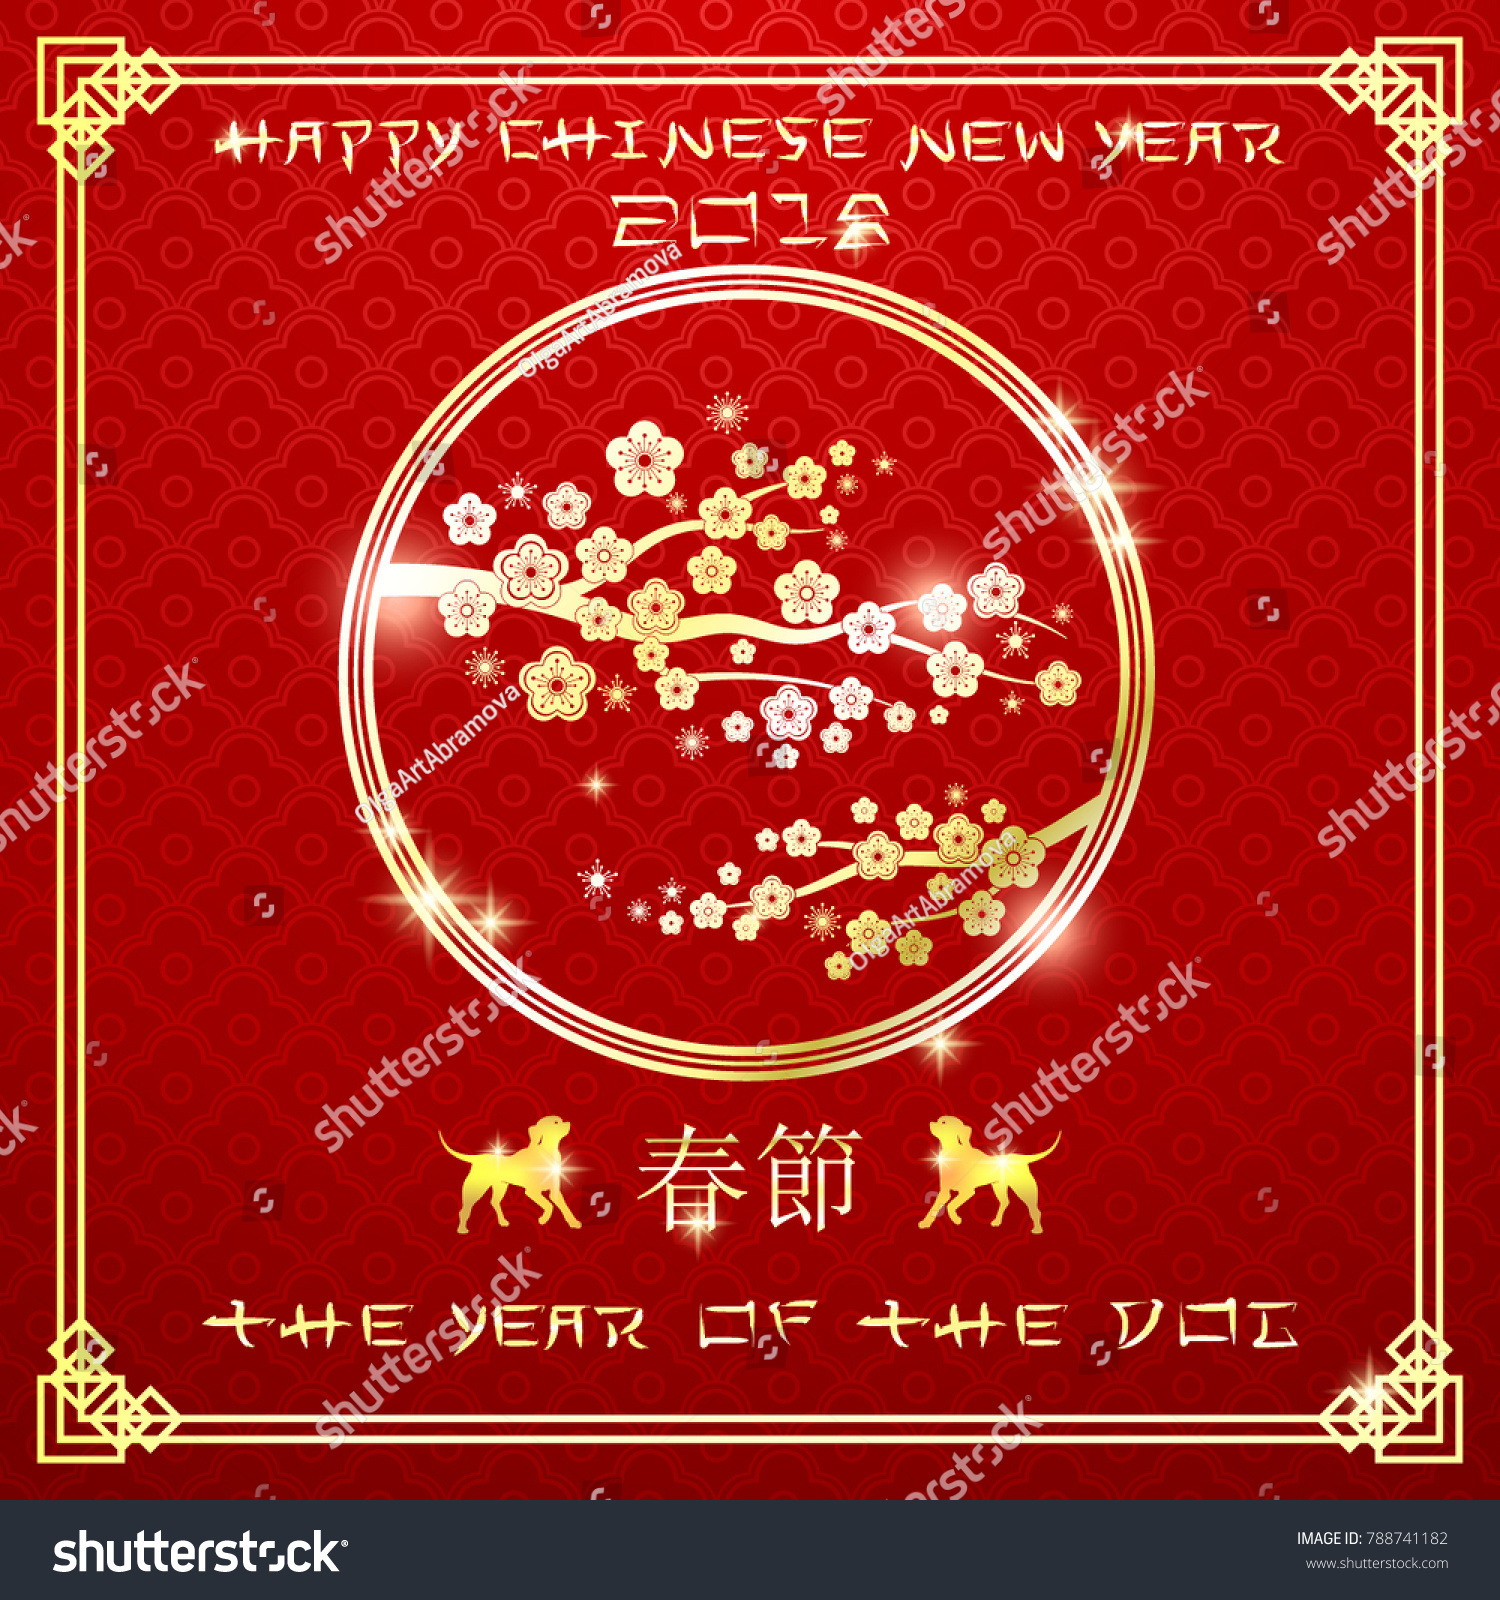 2018 lunar new year card golden dog blooming cherry fireworks on red background